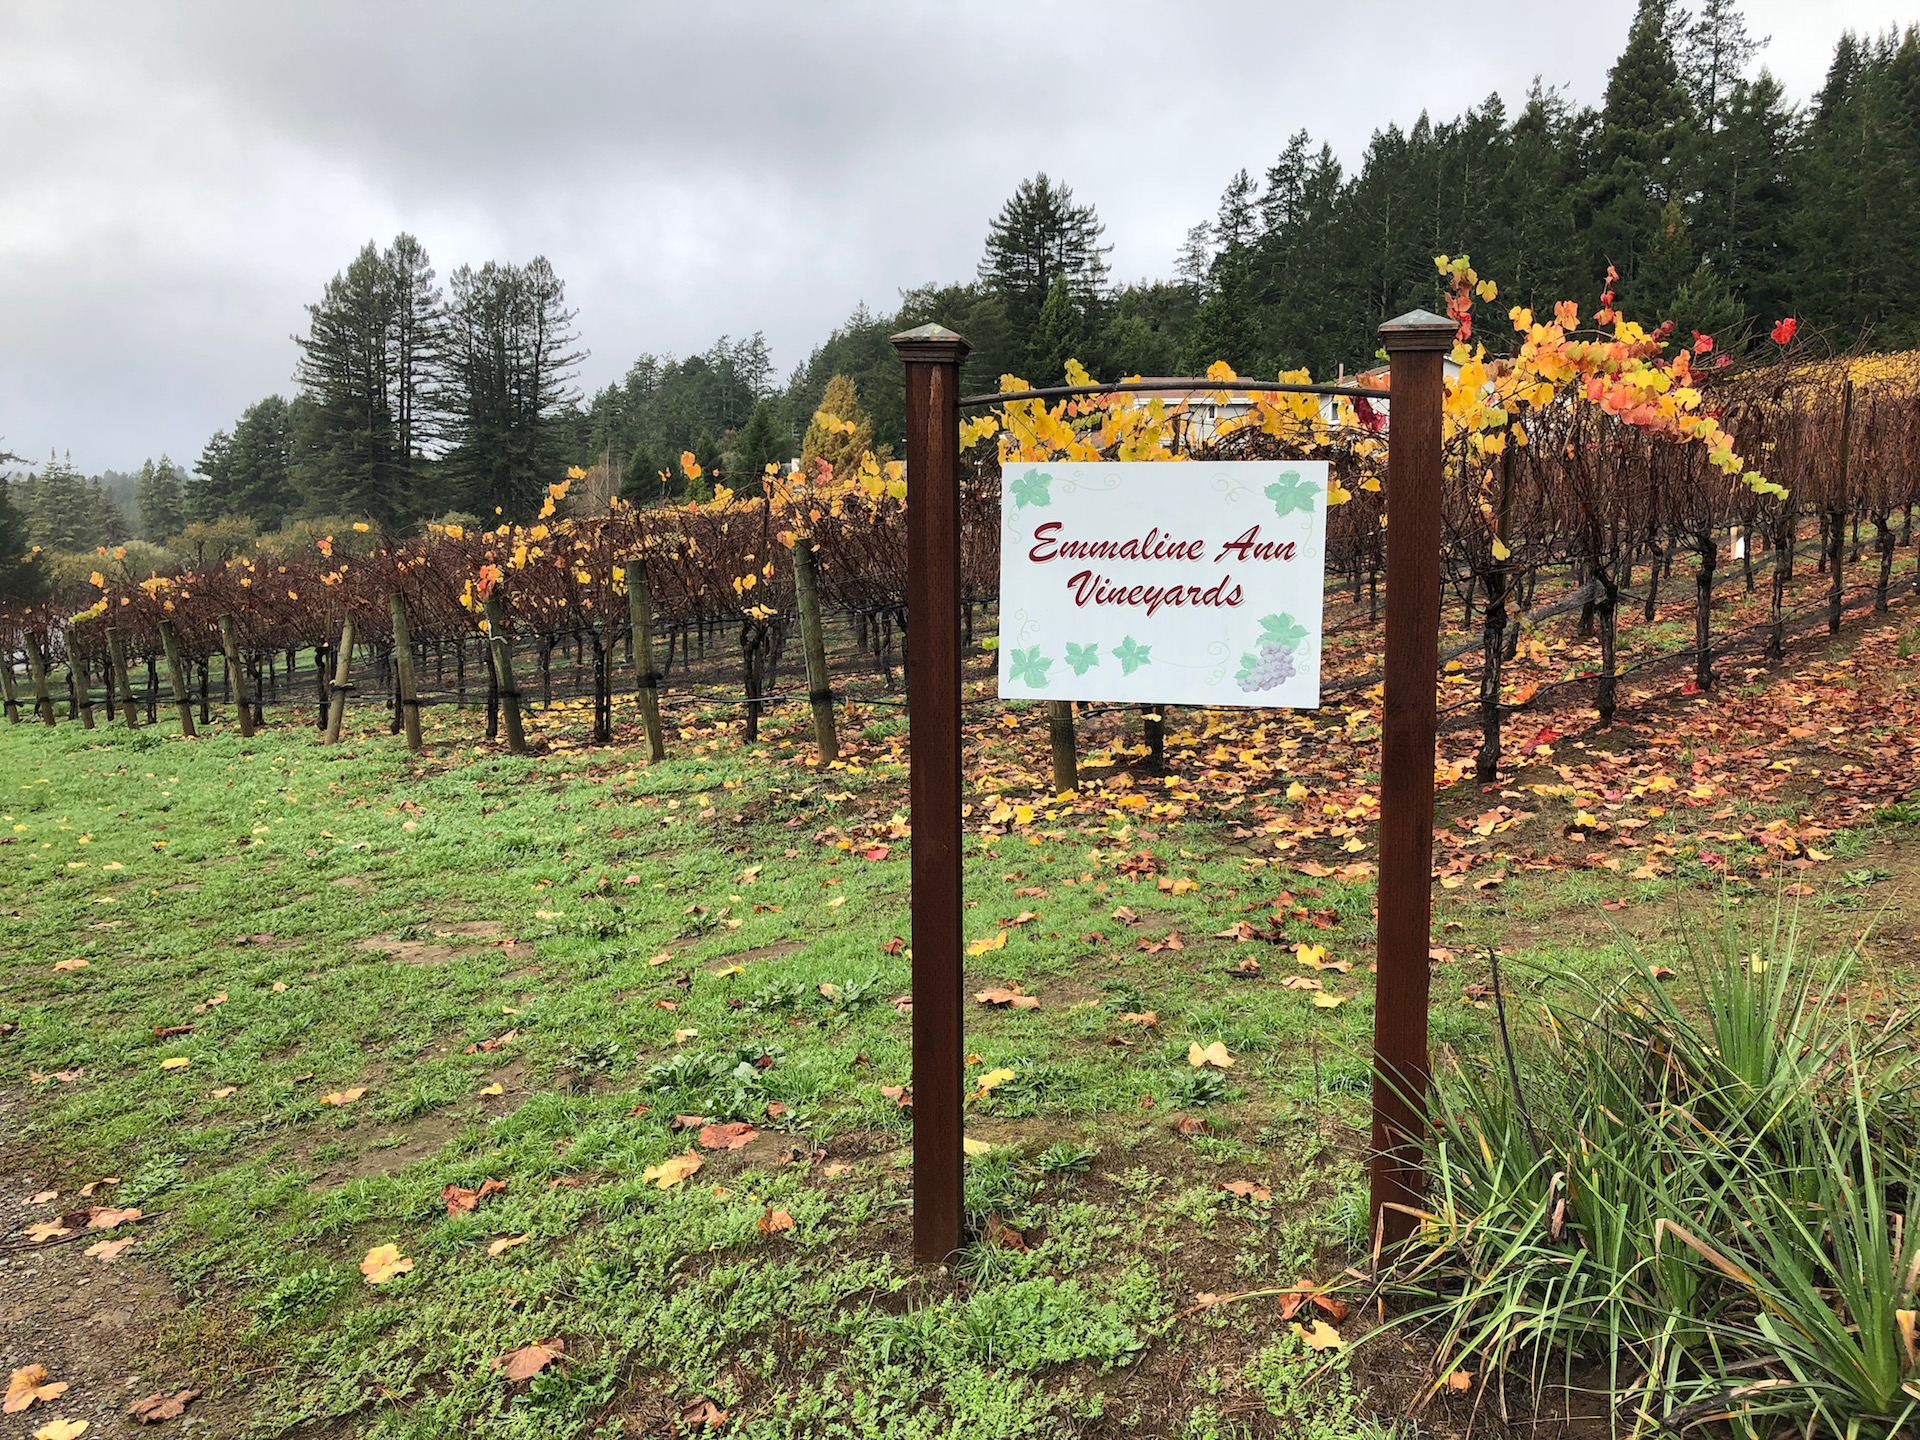 Sebastopol's Emmaline Ann Vineyards, one of the sources for Cobb Wines' Pinot Noir